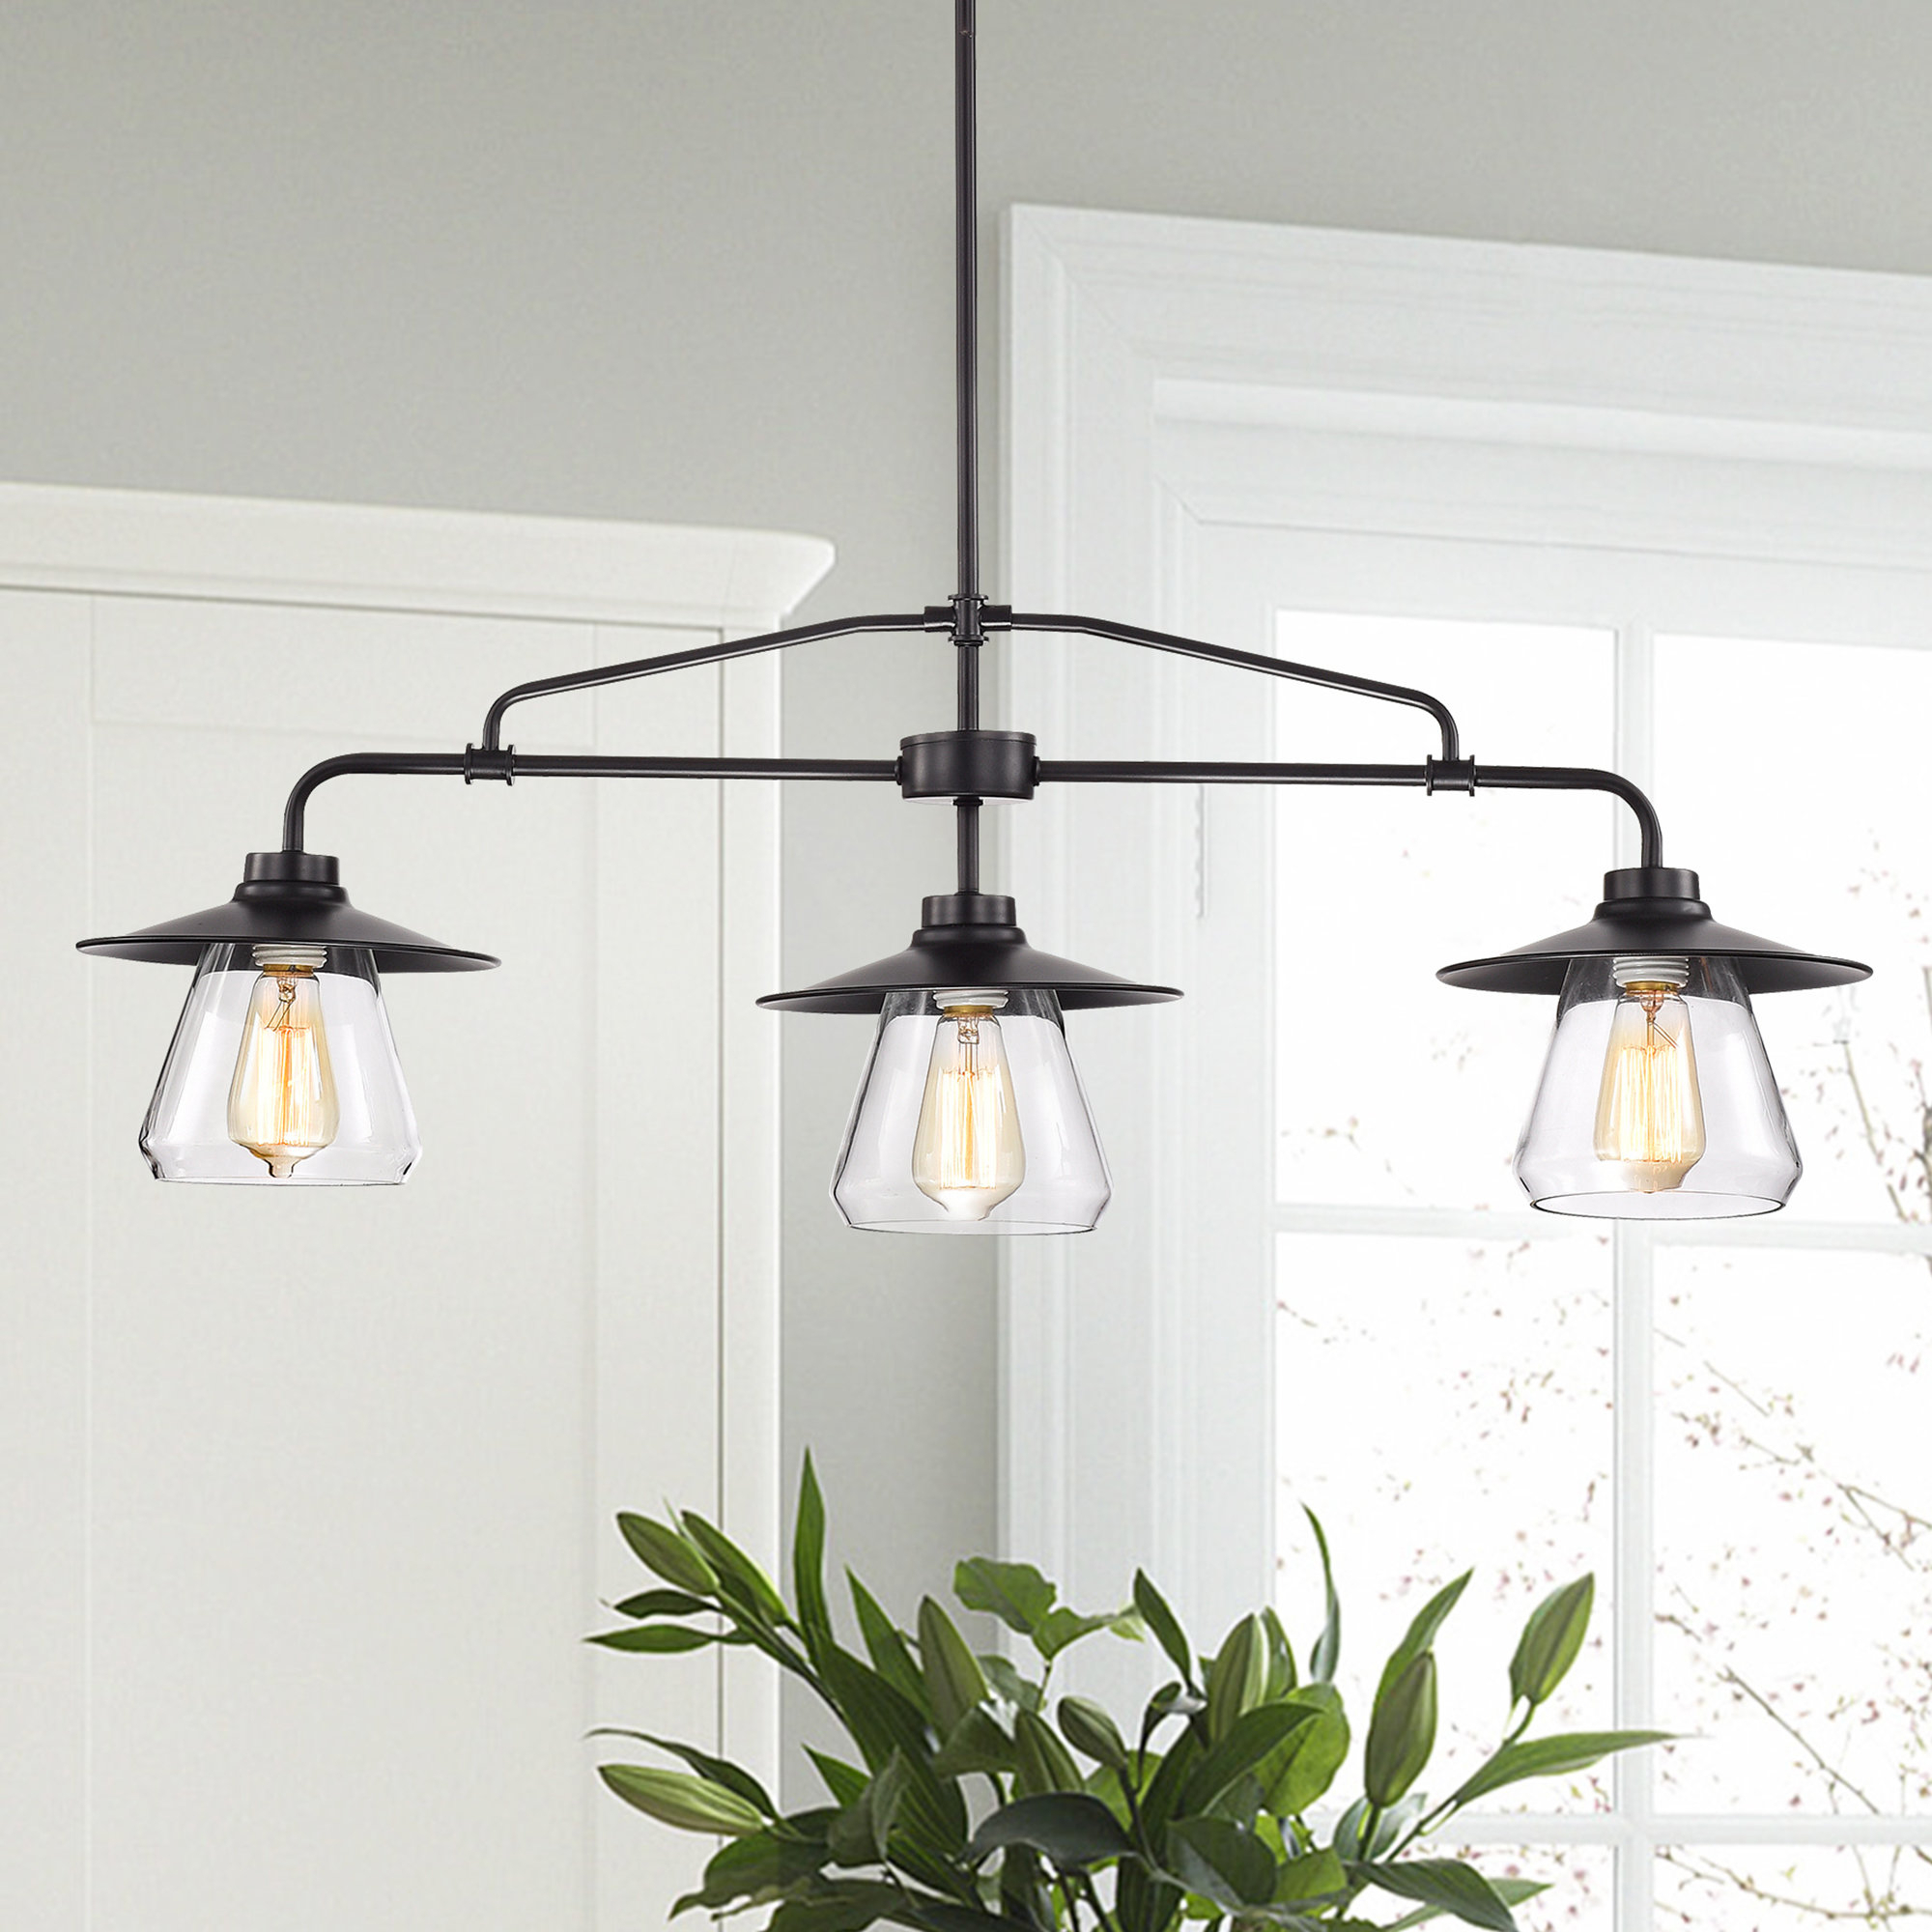 Kitchen Island Pendant Lighting Fixtures – Gnubies Throughout Ariel 3 Light Kitchen Island Dome Pendants (Image 23 of 30)